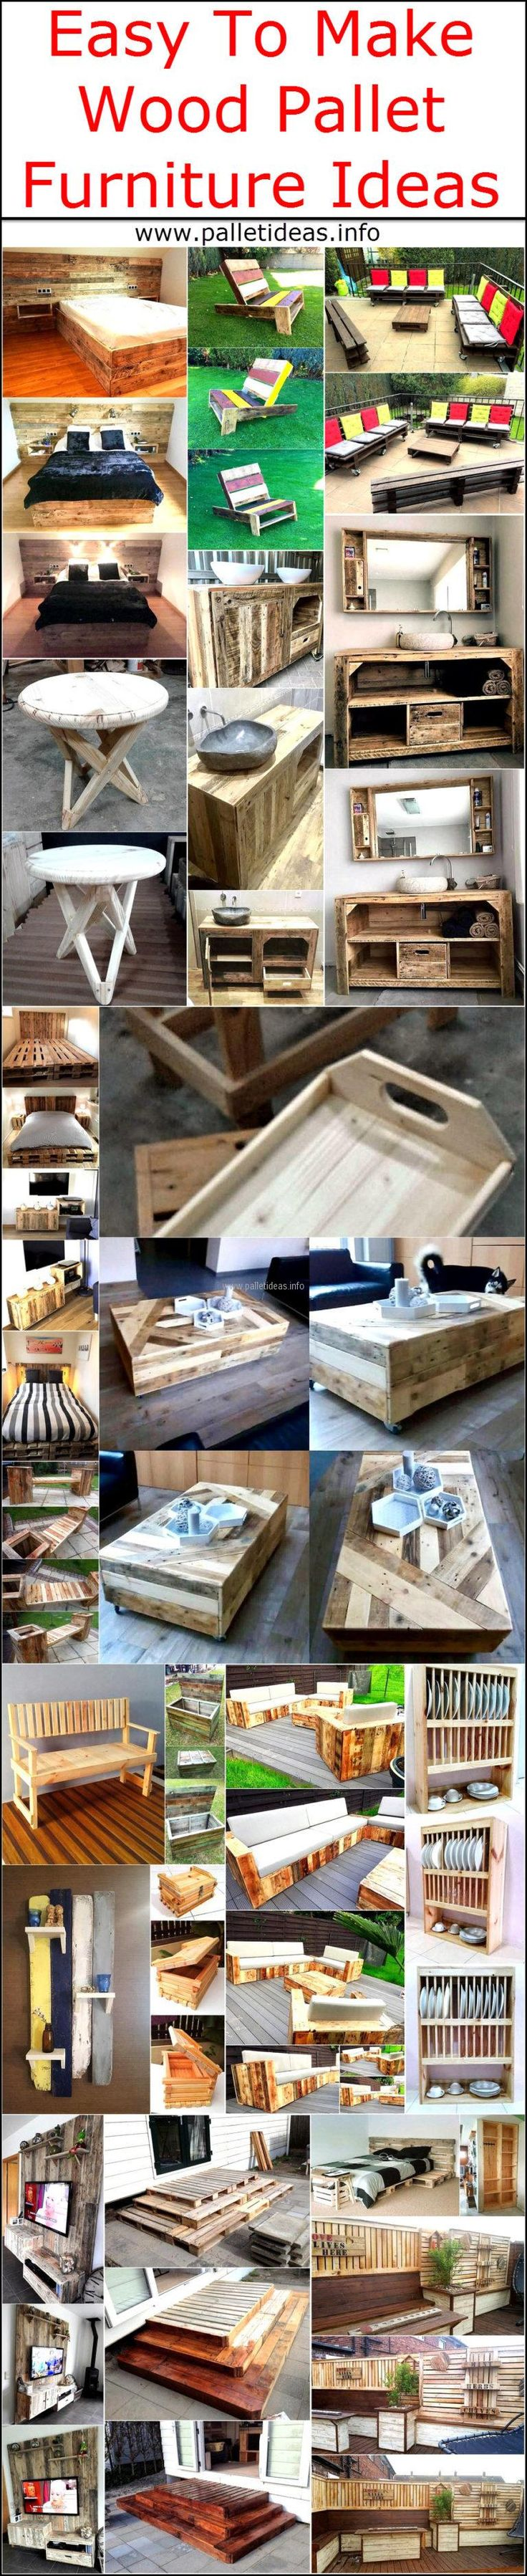 Easy To Make Wood Pallet Furniture Ideas